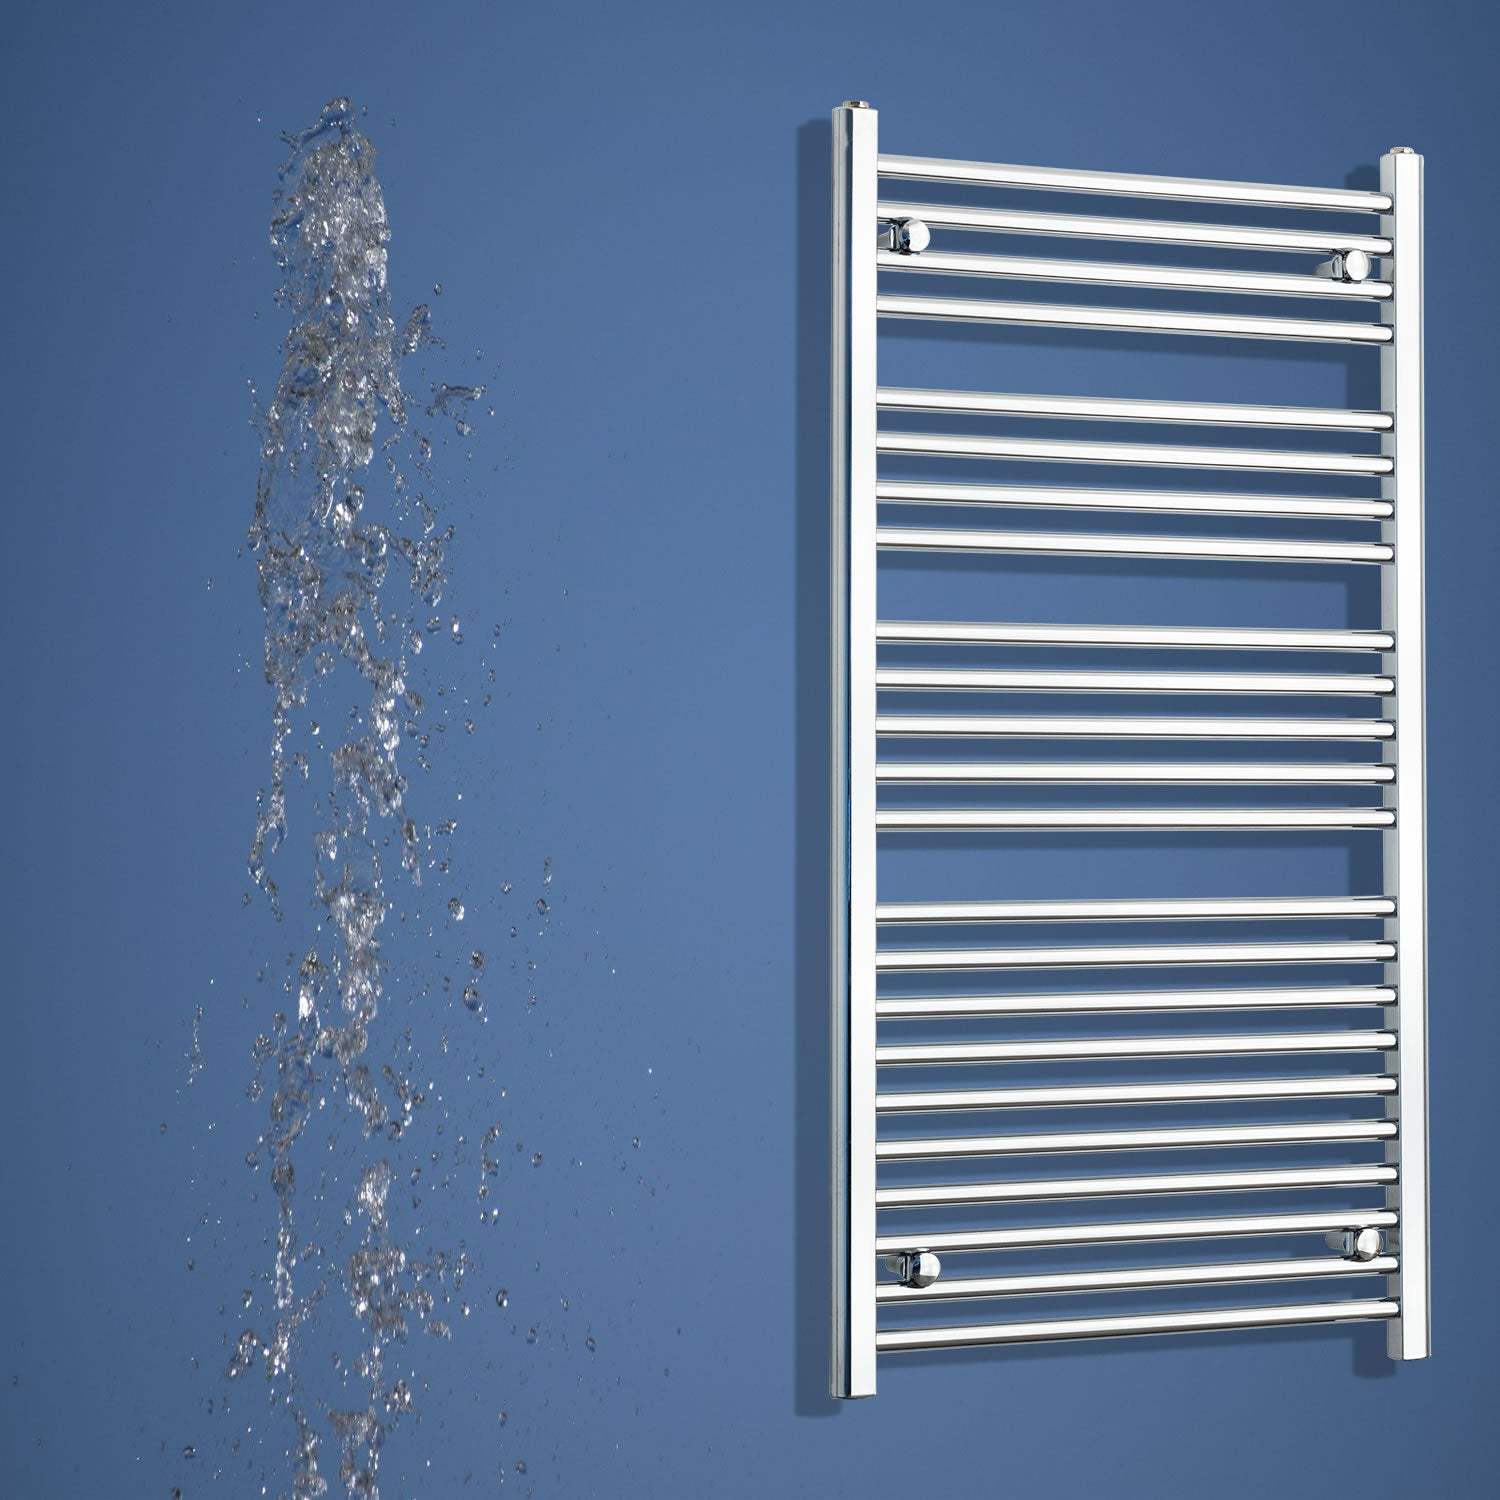 1200 mm High x 700 mm Wide Heated Straight Towel Rail Radiator Chrome